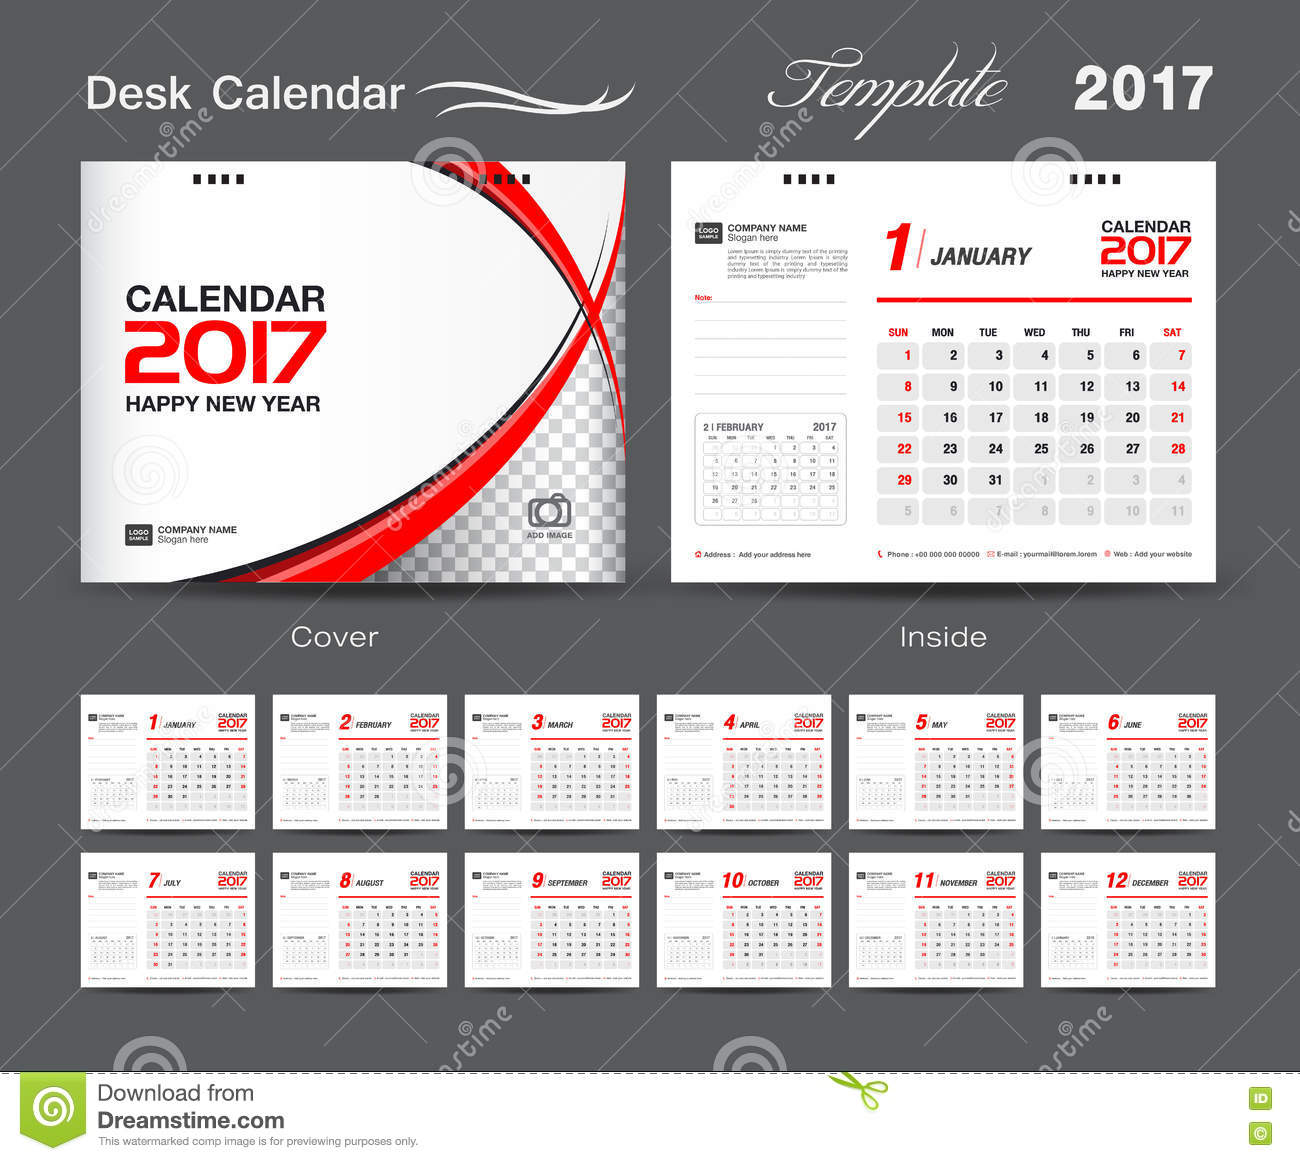 Business Calendar Design : Set white and red desk calendar template design